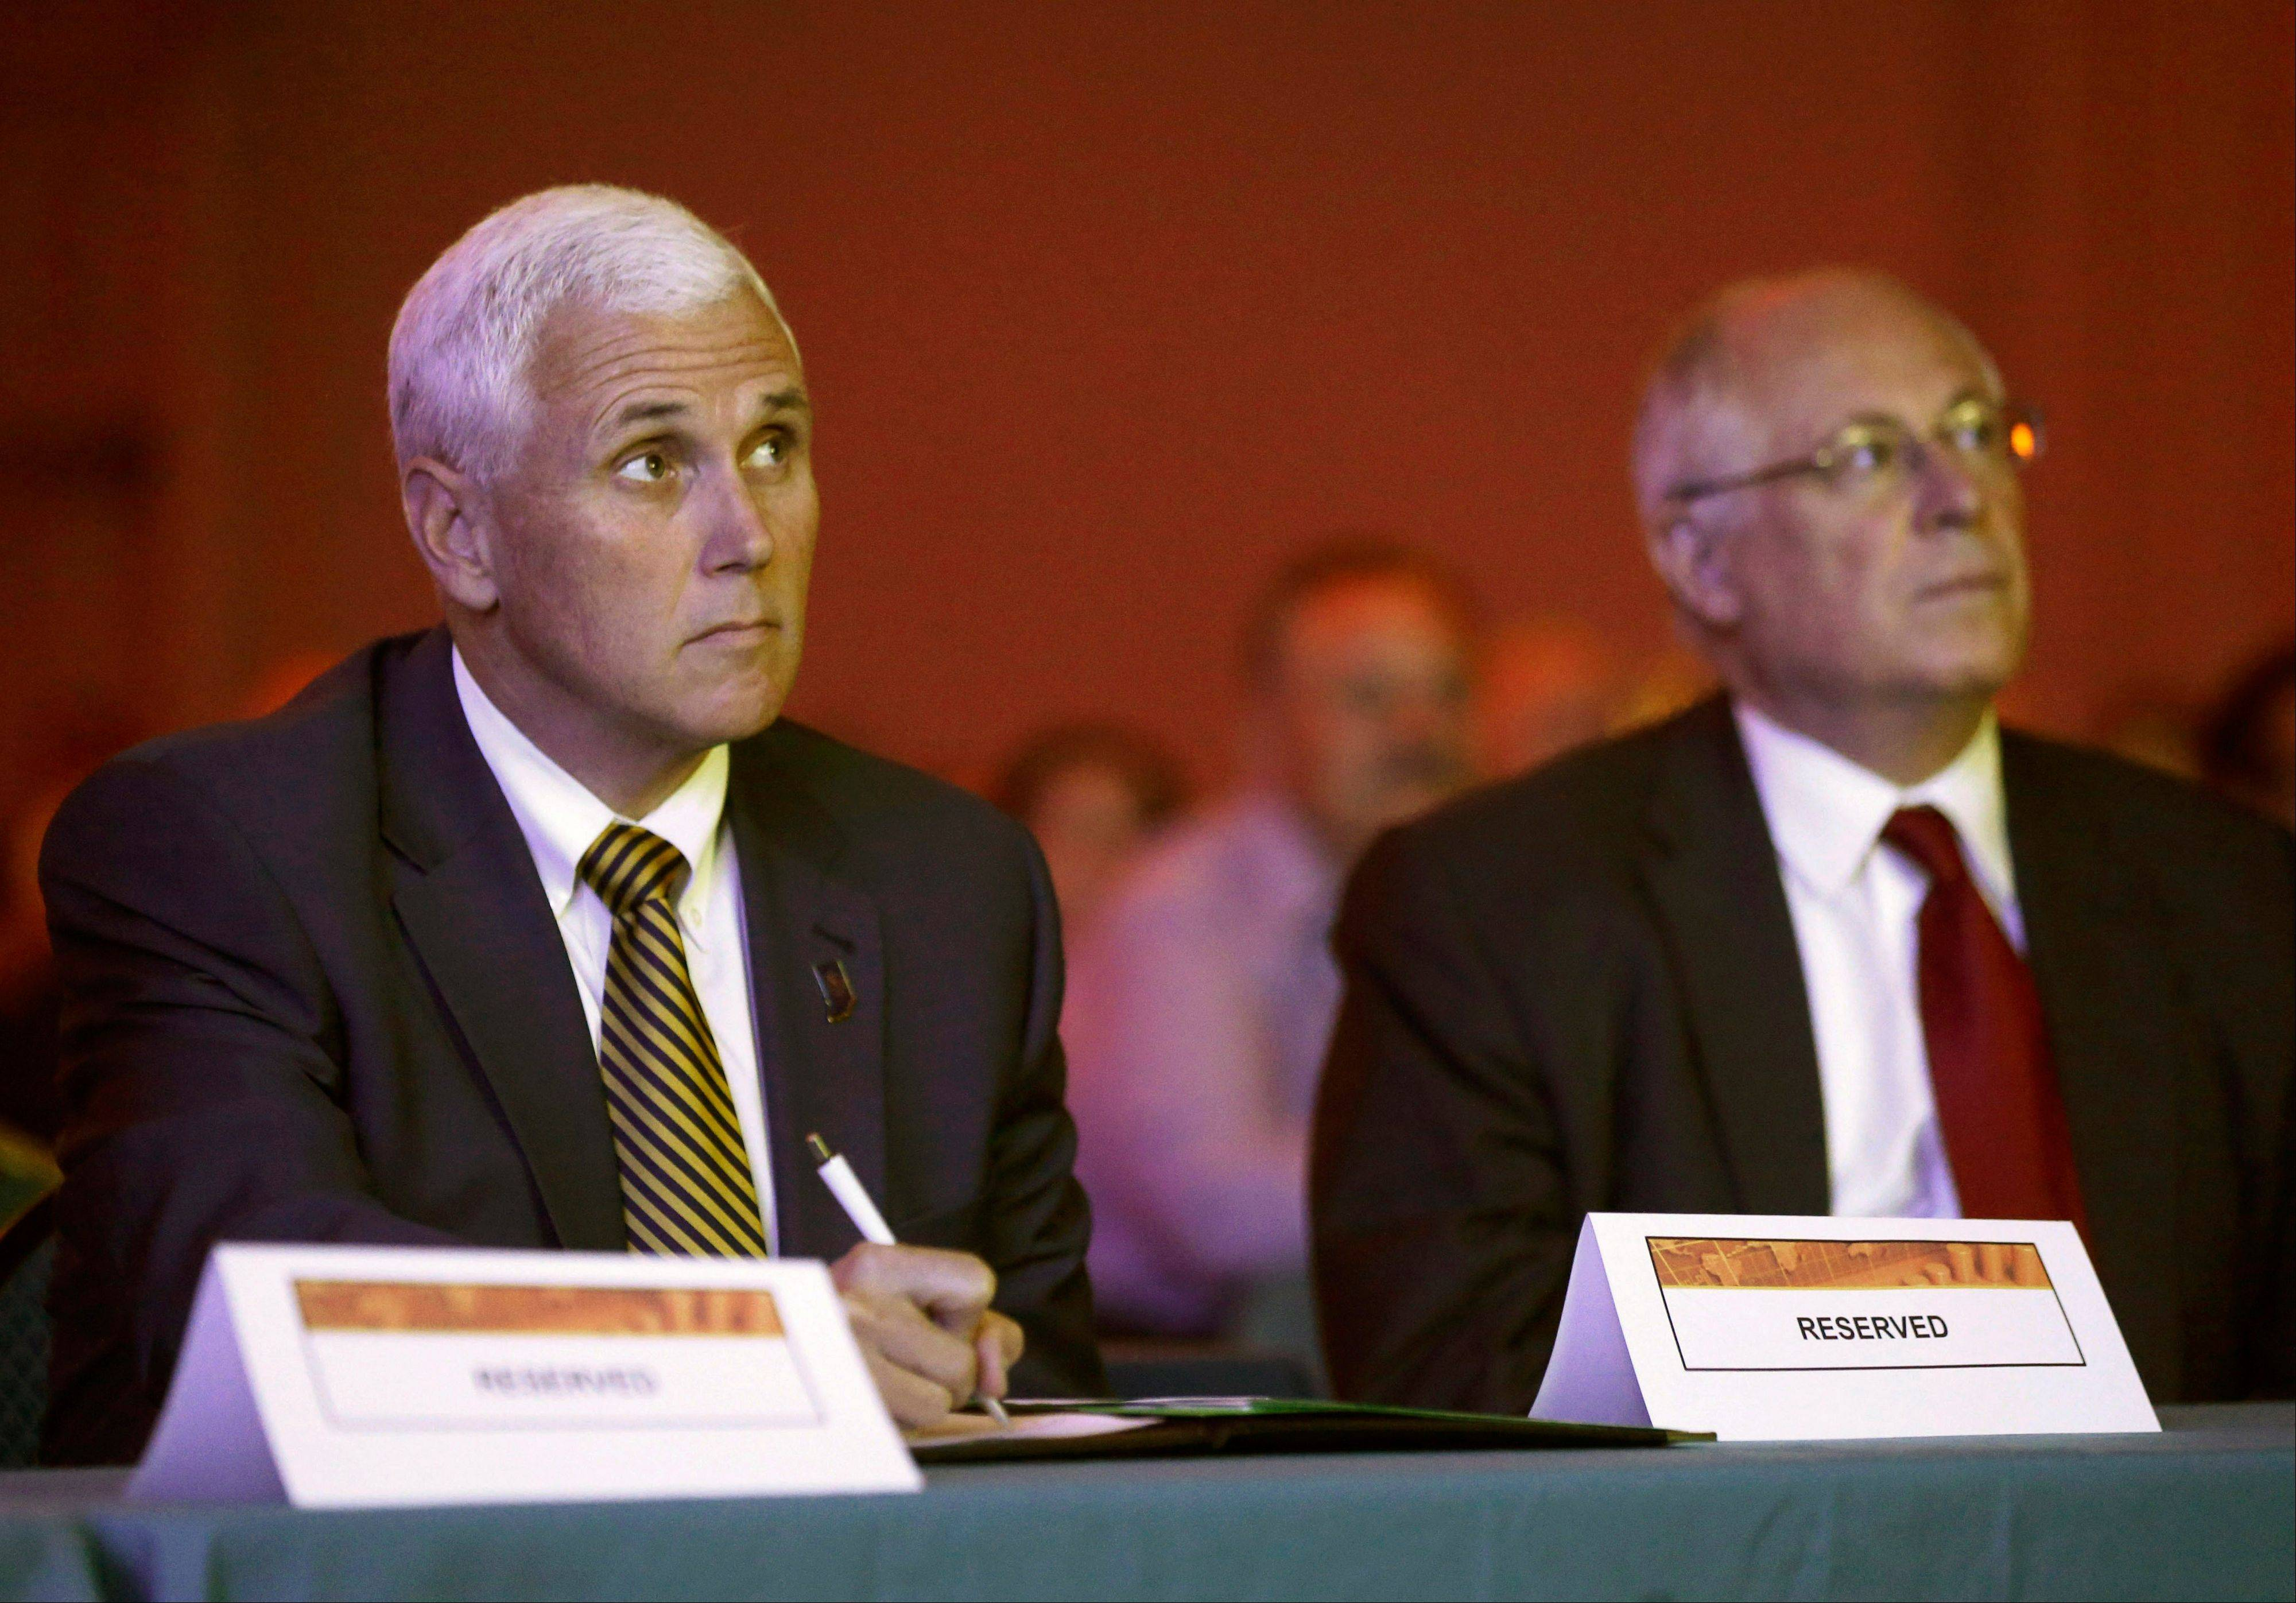 Indiana Gov. Mike Pence, left, and Illinois Gov. Pat Quinn watch a video during the Illiana Industry Forum they hosted in June in Rosemont.